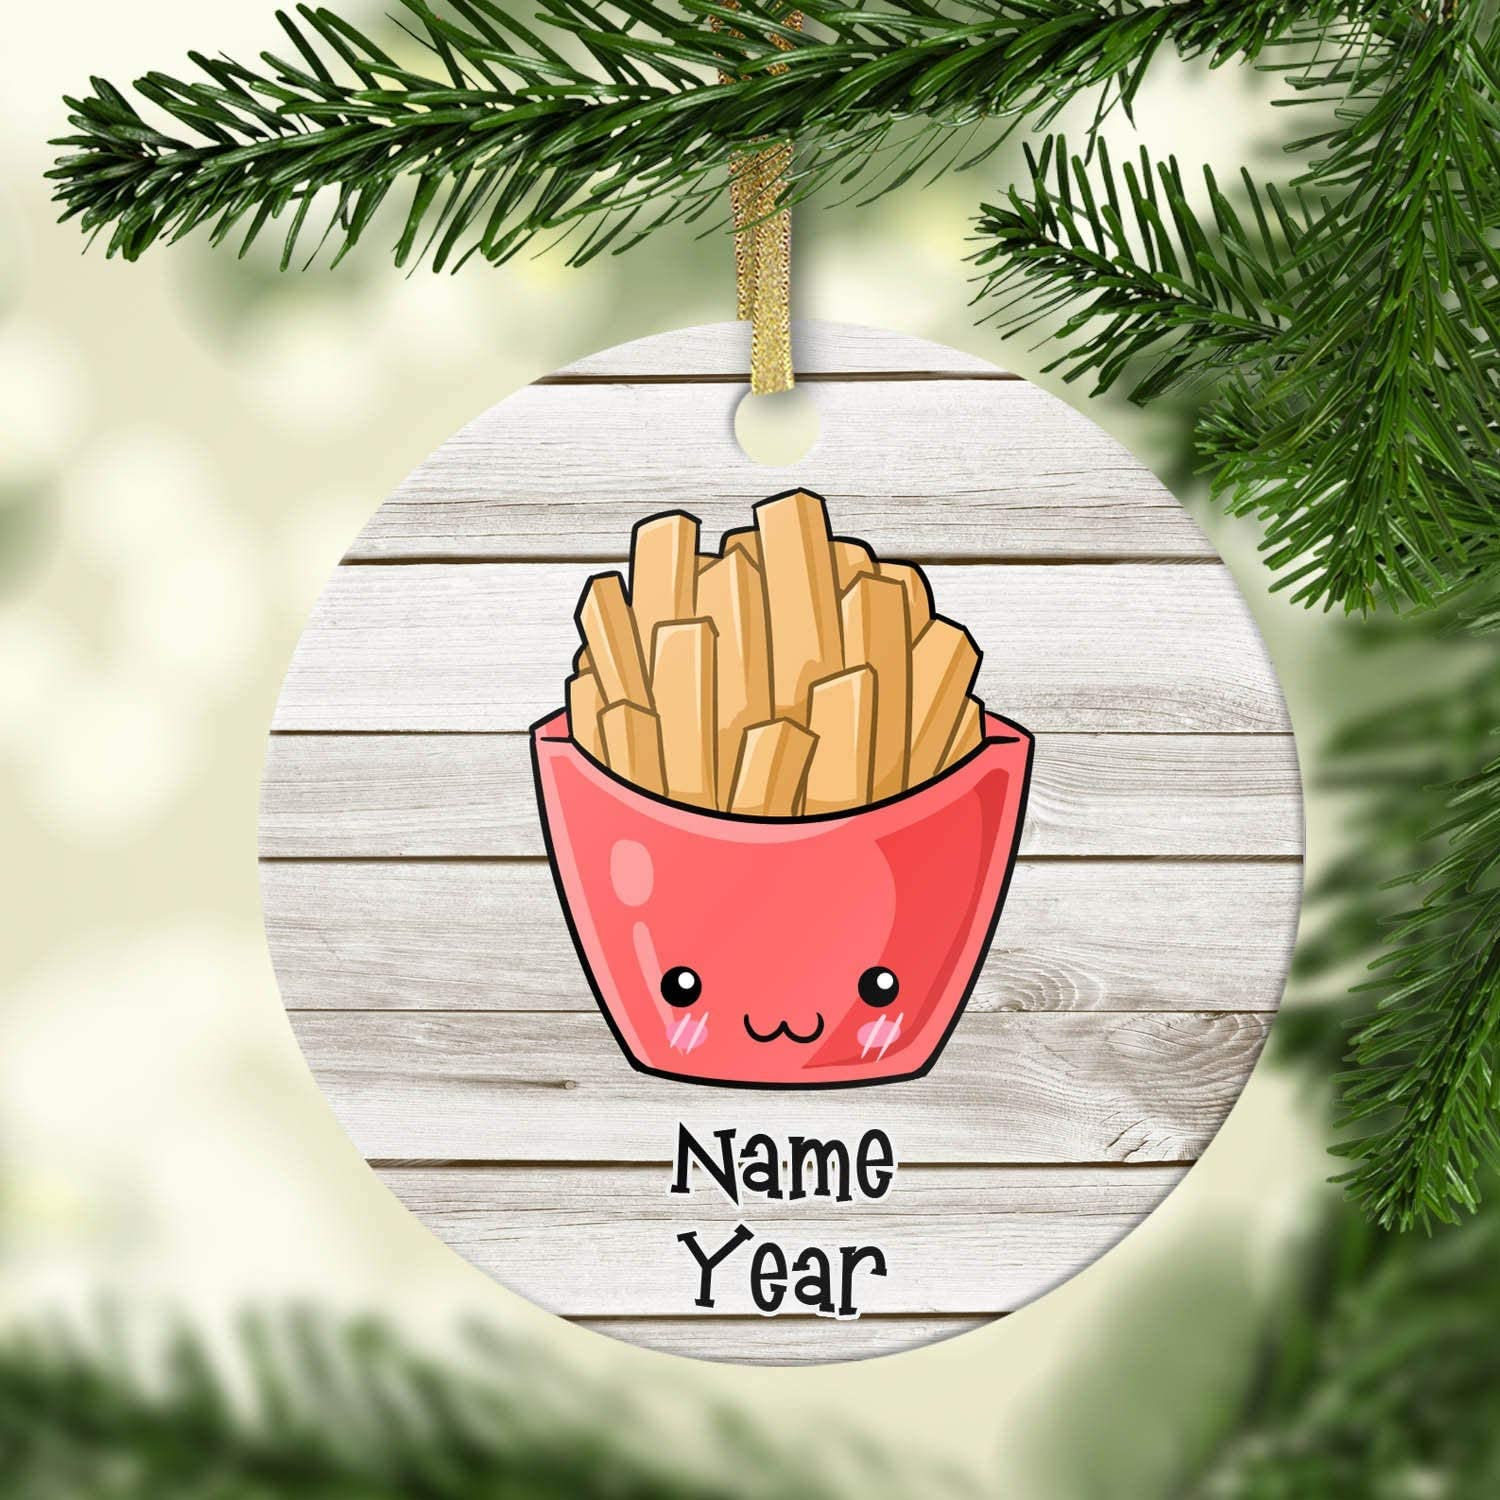 Lplpol French Fries Christmas Ornament - Personalized Ceramic Christmas Ornament - Name Date - Porcelain - Holiday Decorations - Custom - Fast Food - Christmas Ornament for Kids